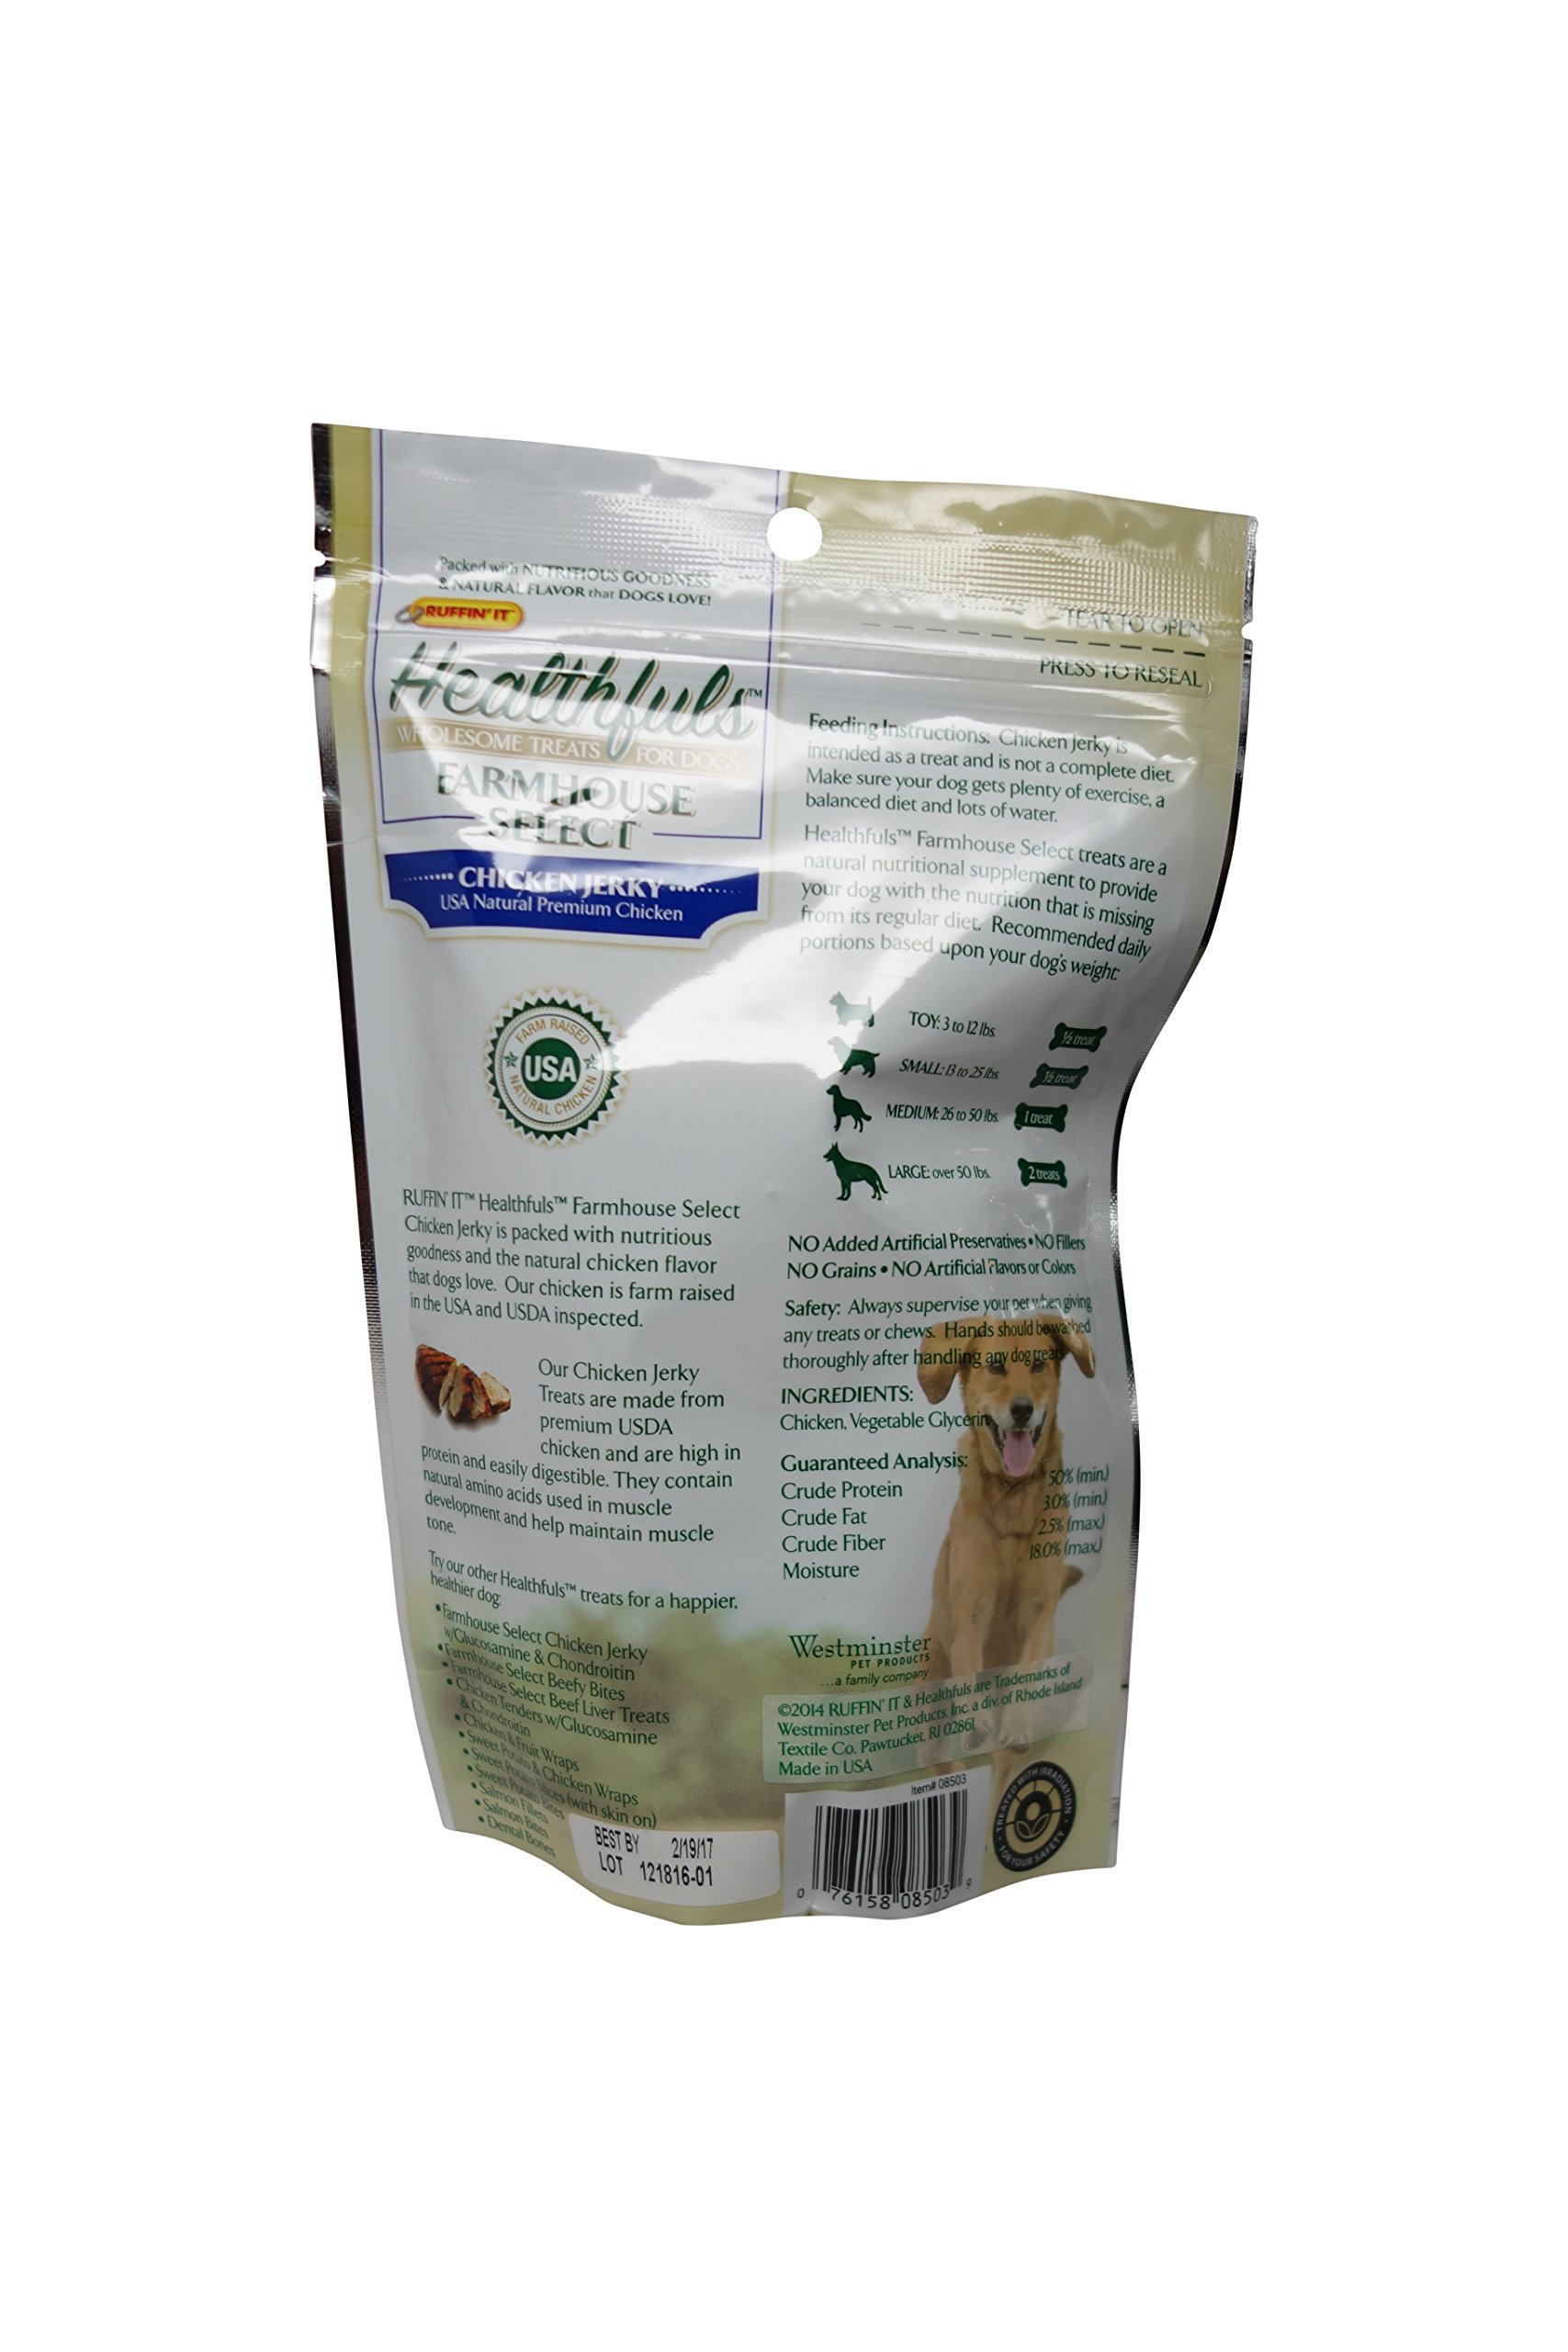 Ruffin It Healthfuls Wholesome Chicken Tenders Treat For Dogs - Made in USA, 3-Pack (12oz in Total) by Ruffin It (Image #4)